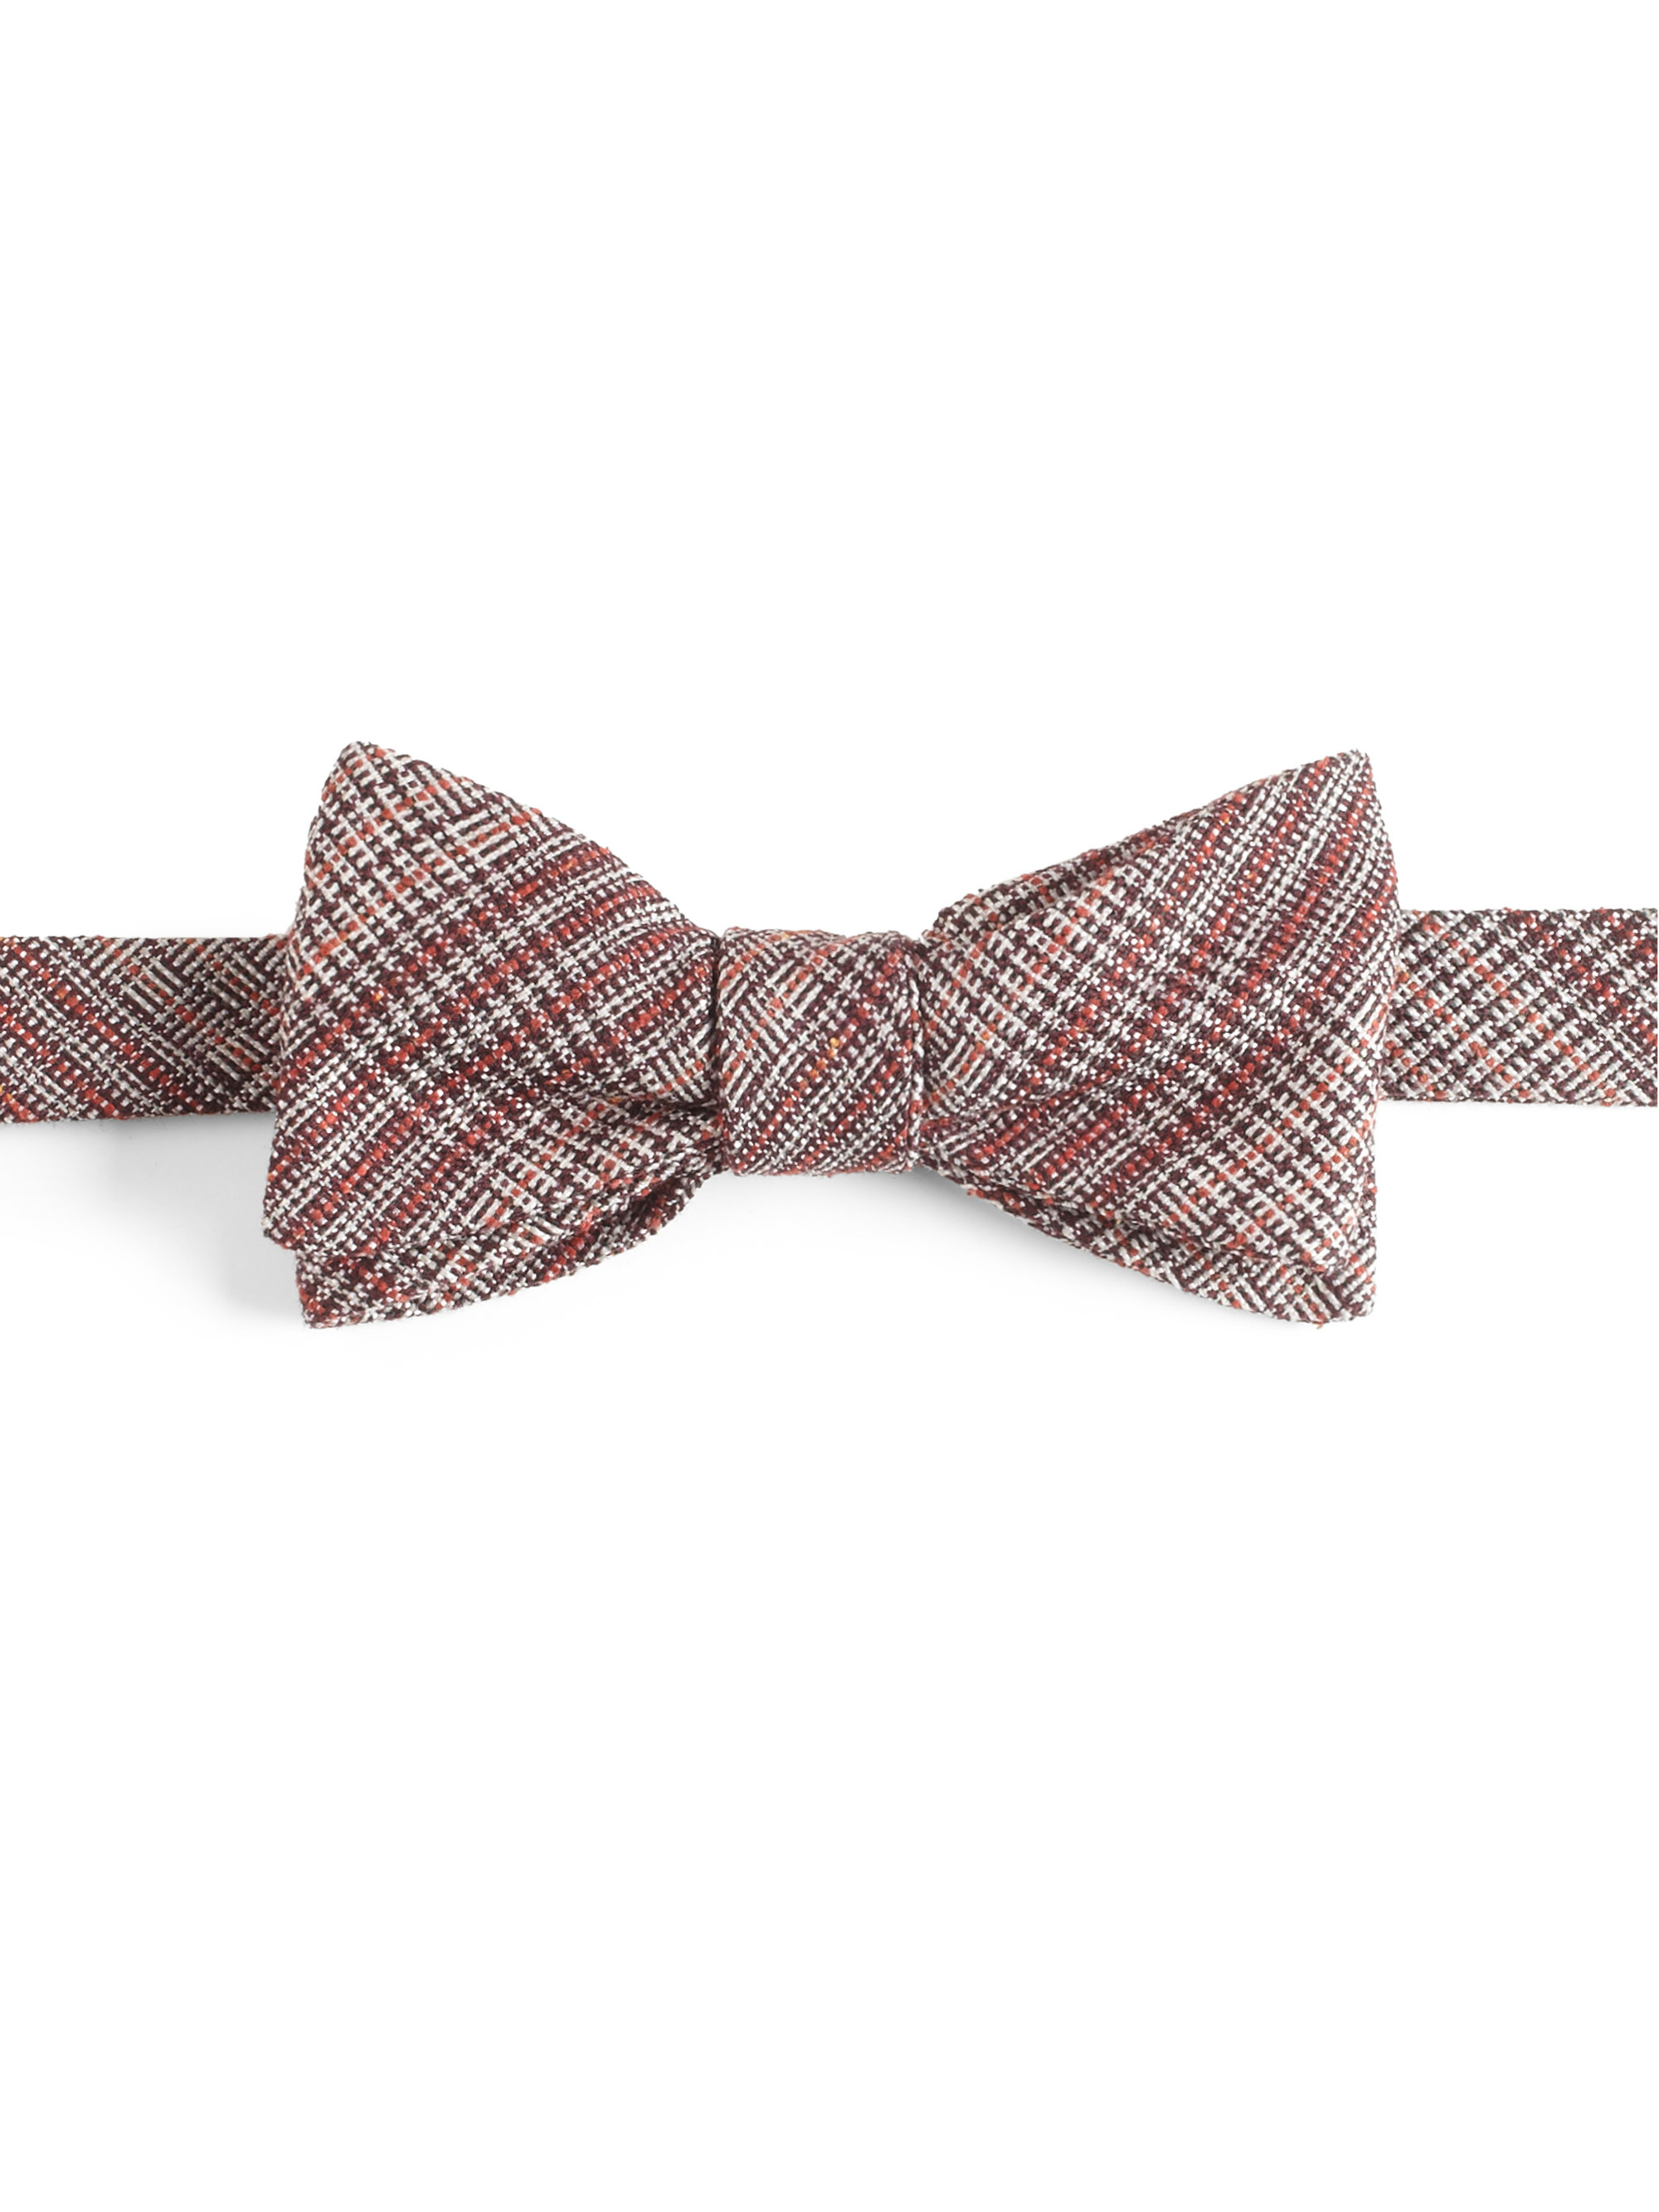 ... official store lyst burberry plaid silkwool bow tie in gray for men  35a6e 95487 54770af425c4